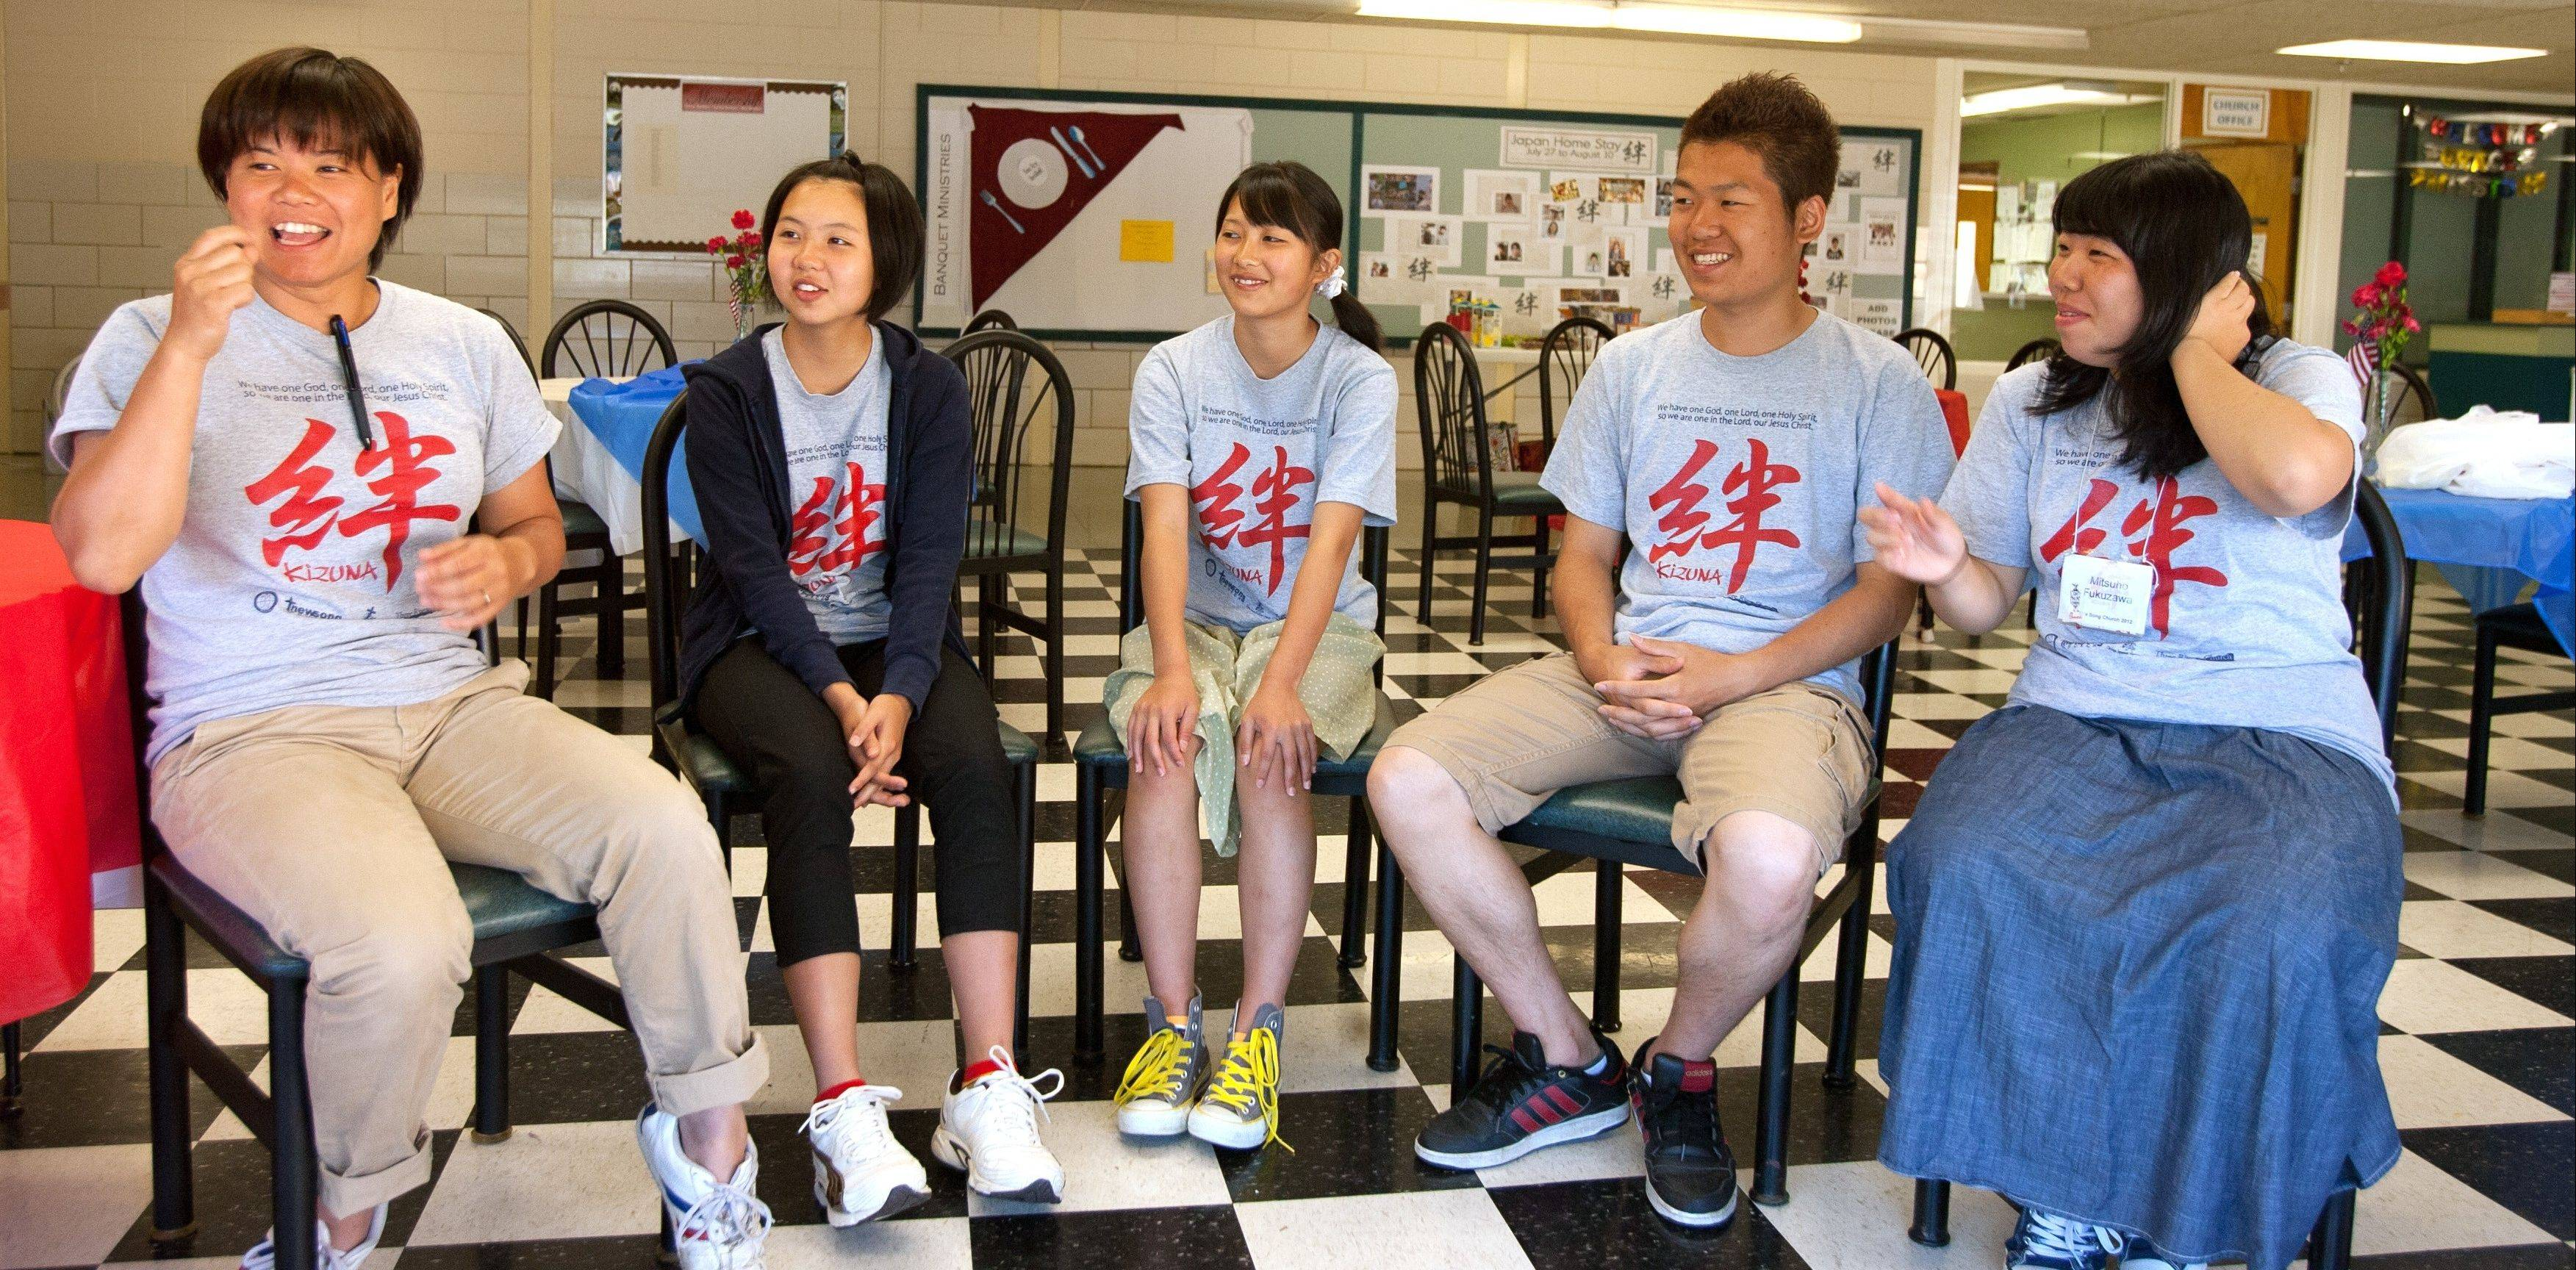 From left to right, Pastor Kyouko Yonaha talks with Haruka Hikithi, 13; Ai Higuchi, 15; Yoshiyuki Aoto, 18; and Mitsuho Fukuzawa, 16 at the New Song Church in Bolingbrook.